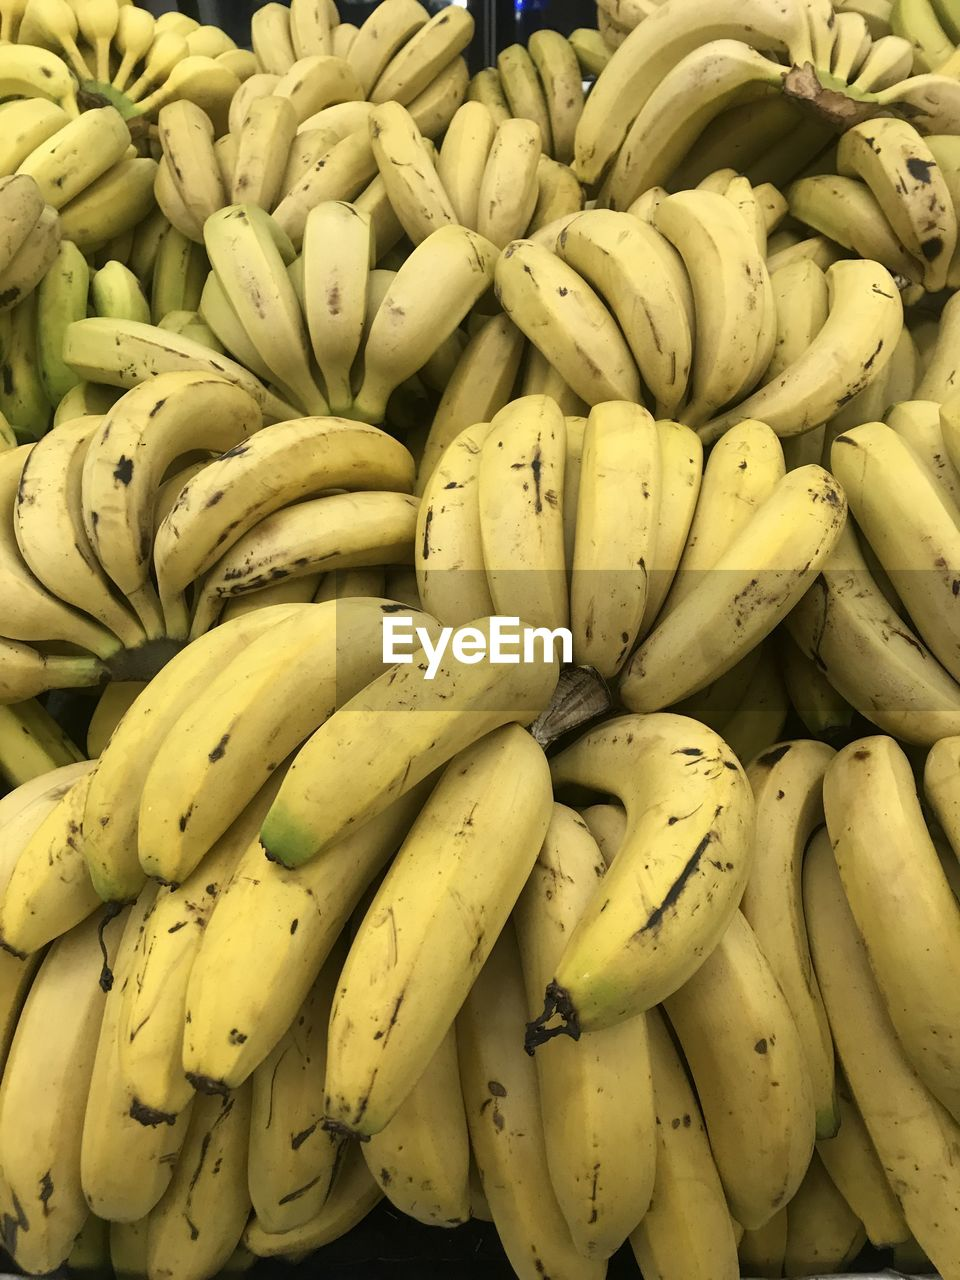 healthy eating, banana, food and drink, wellbeing, food, freshness, for sale, fruit, yellow, market, large group of objects, retail, market stall, abundance, backgrounds, full frame, still life, no people, close-up, collection, retail display, ripe